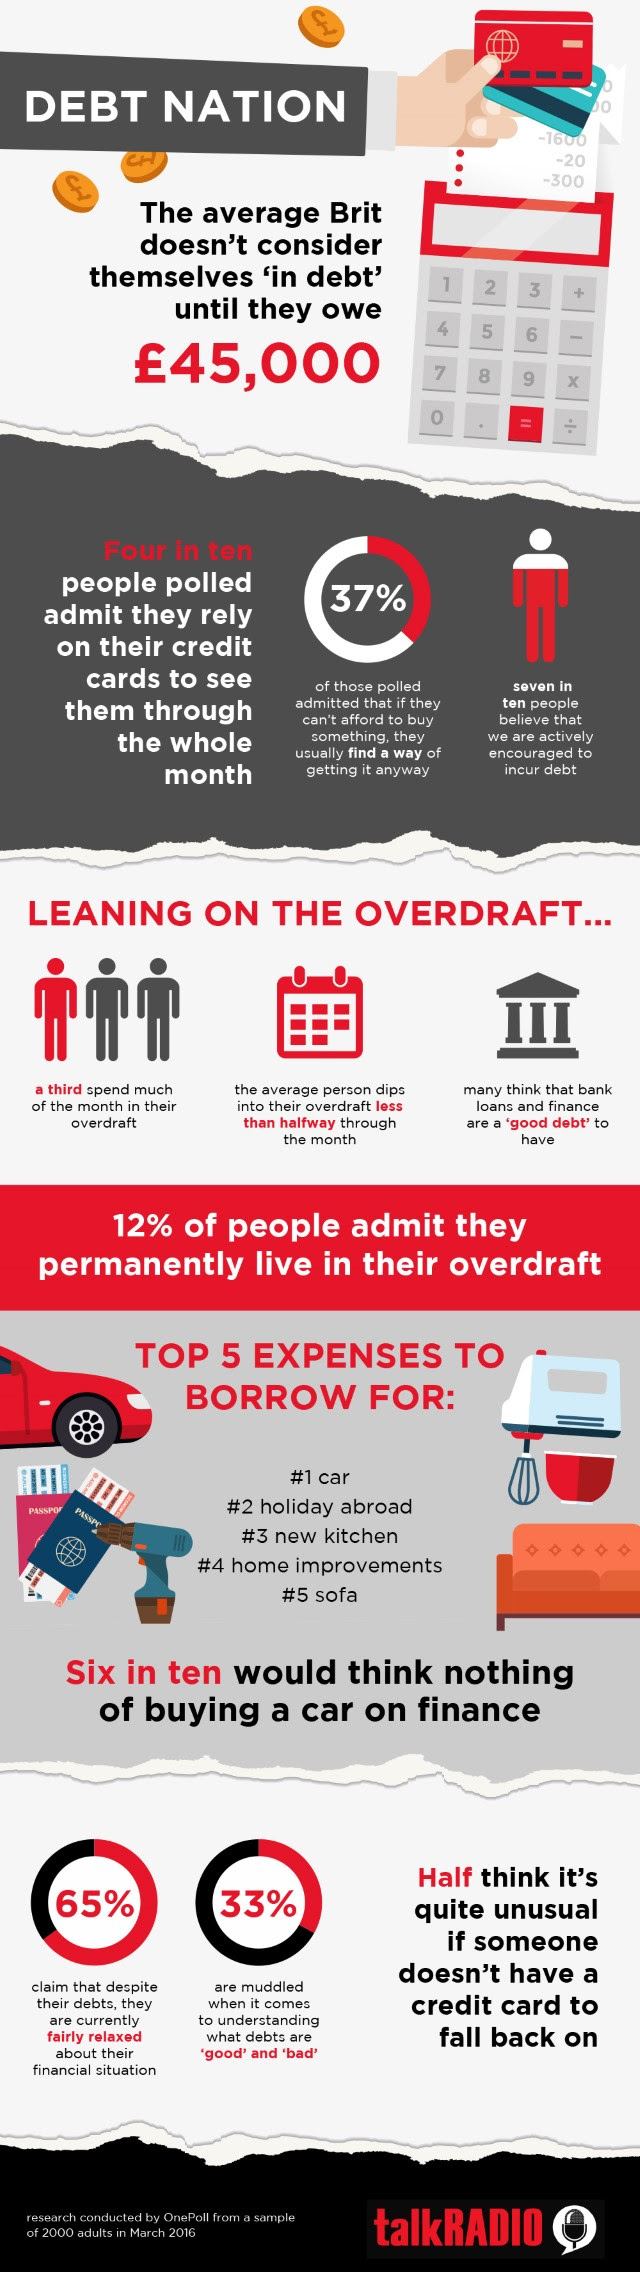 debt infographic march 2016